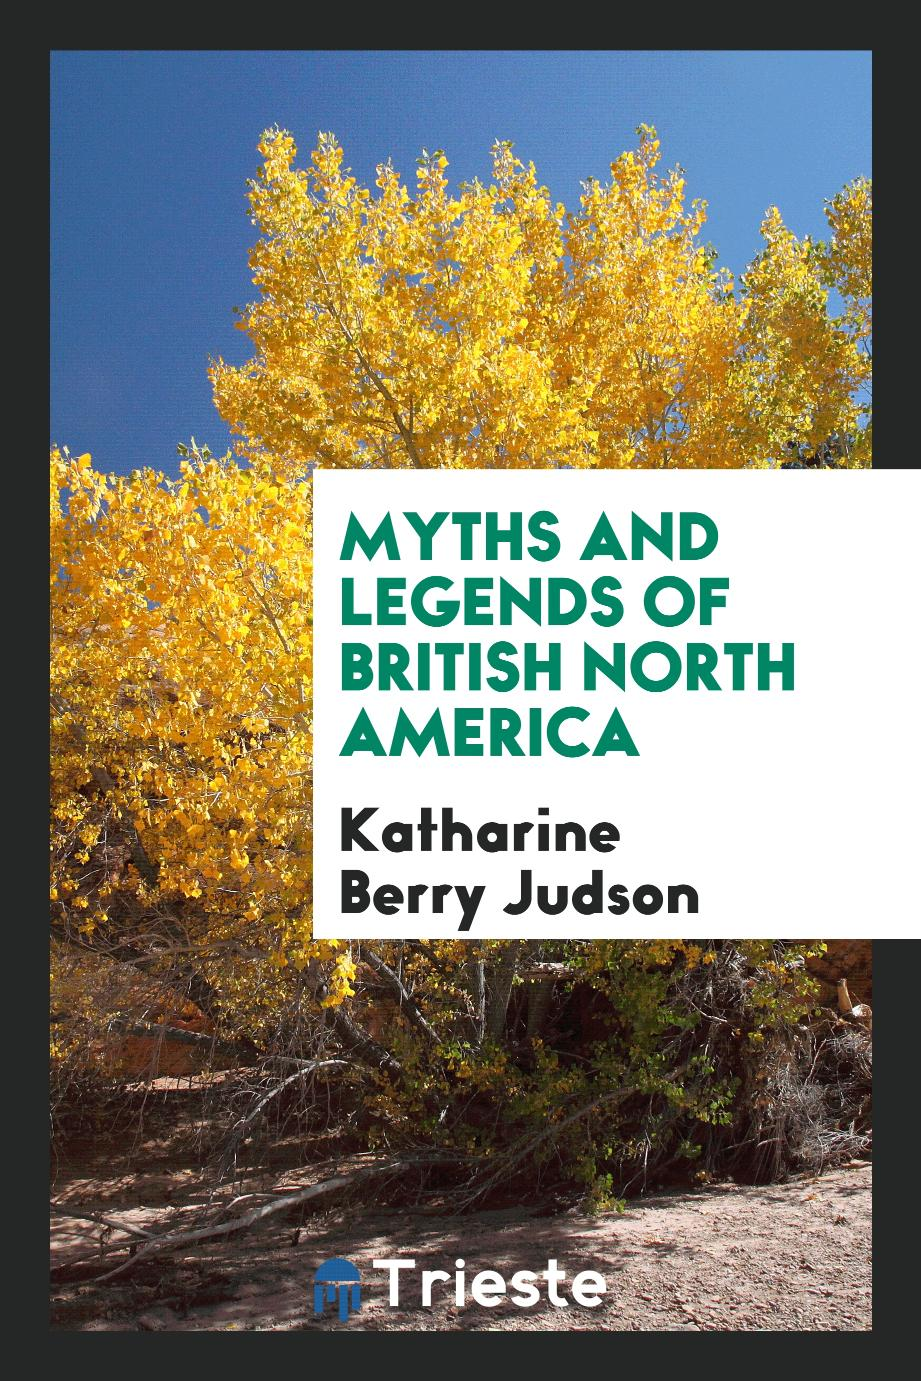 Katharine Berry Judson - Myths and legends of British North America